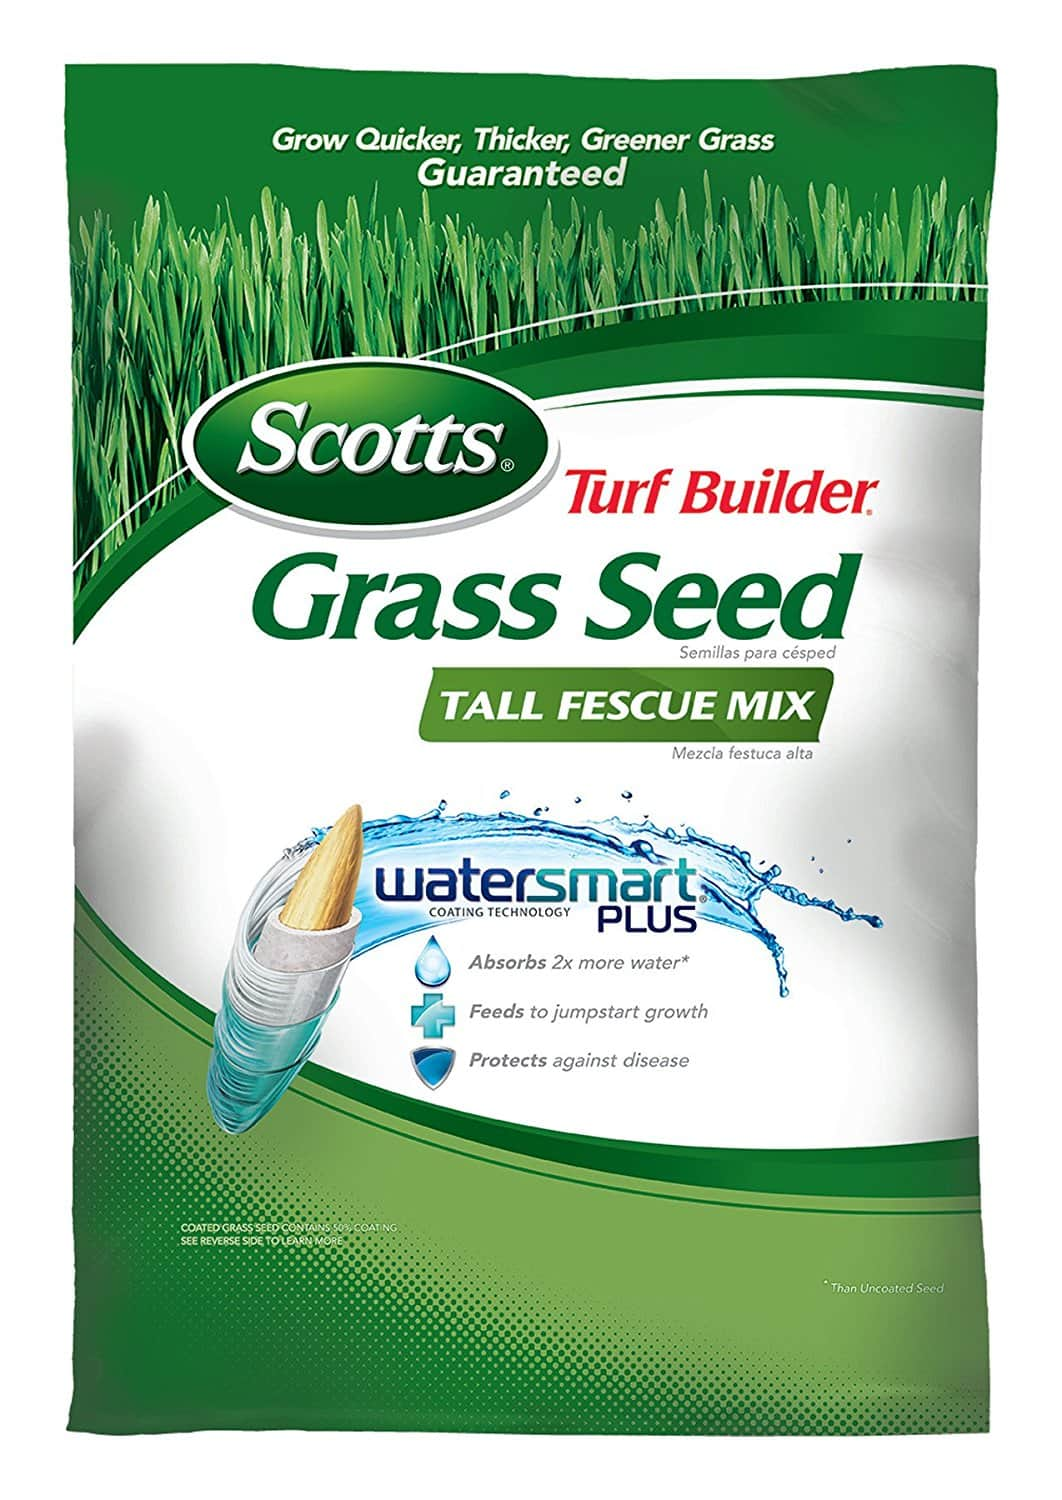 Scotts Turf Builder Grass Seed - Tall Fescue Mix 20 pounds $34.88